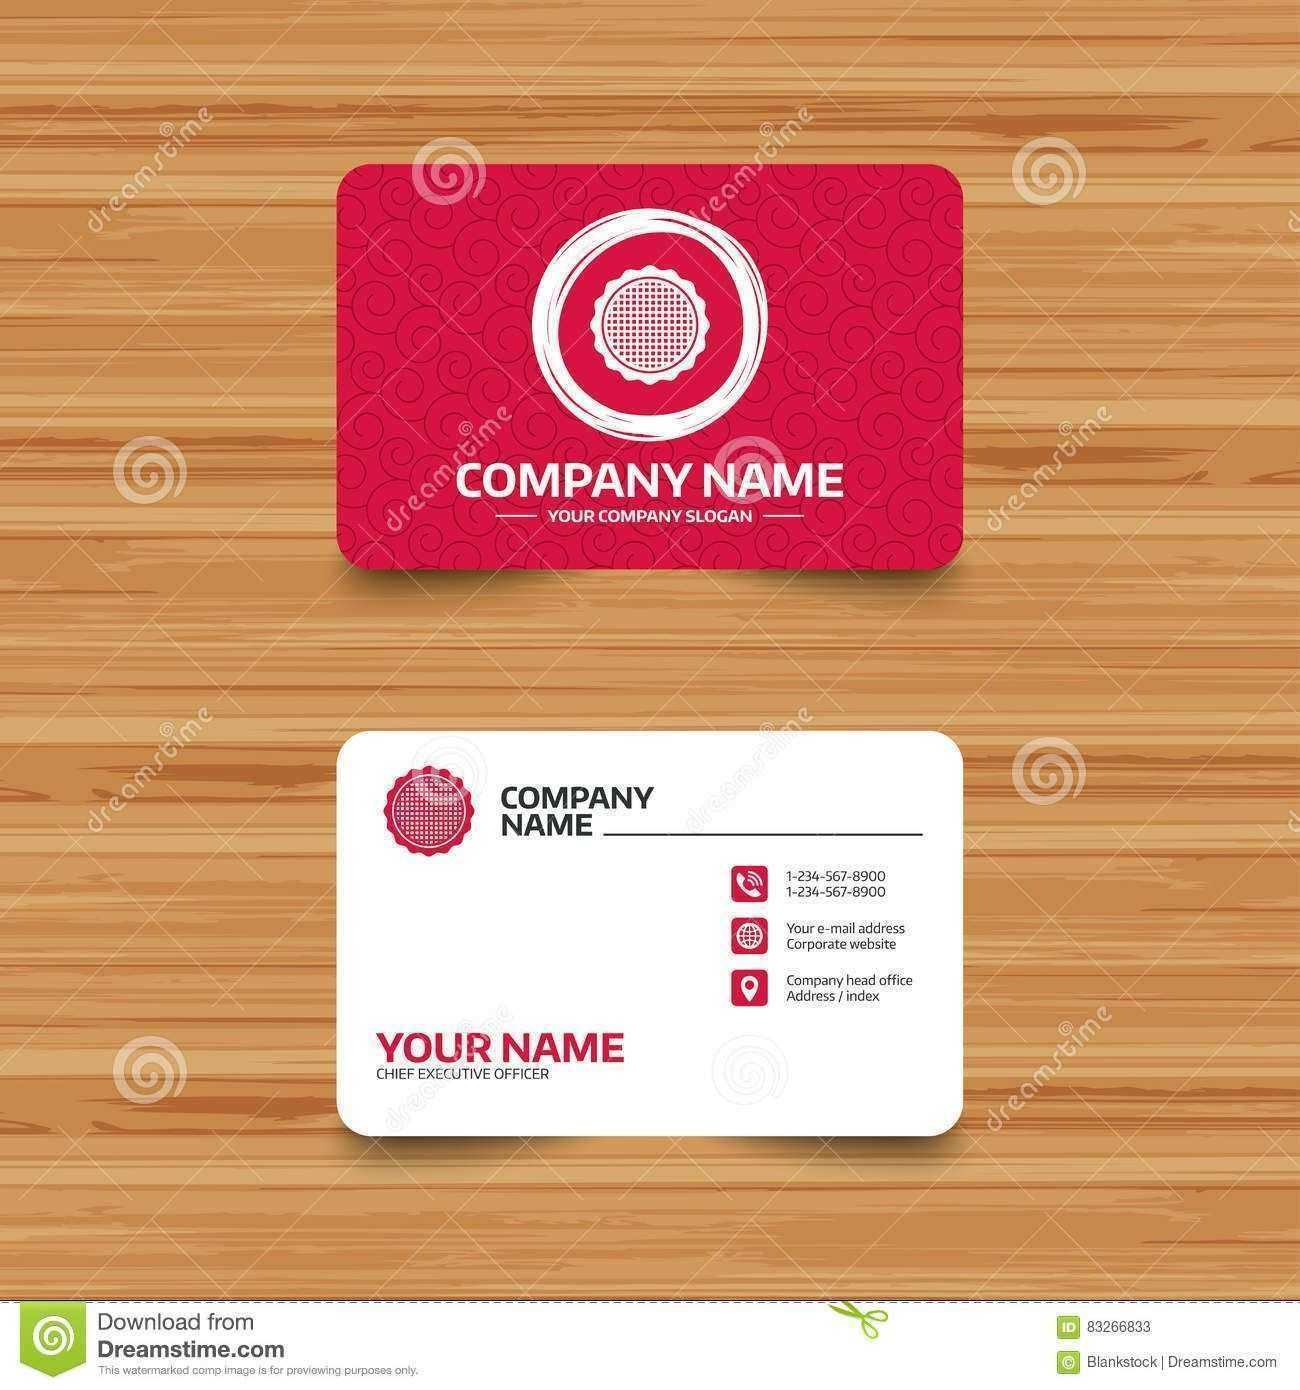 36 Free Printable Business Card Template Canva Photo with Business Card Template Canva